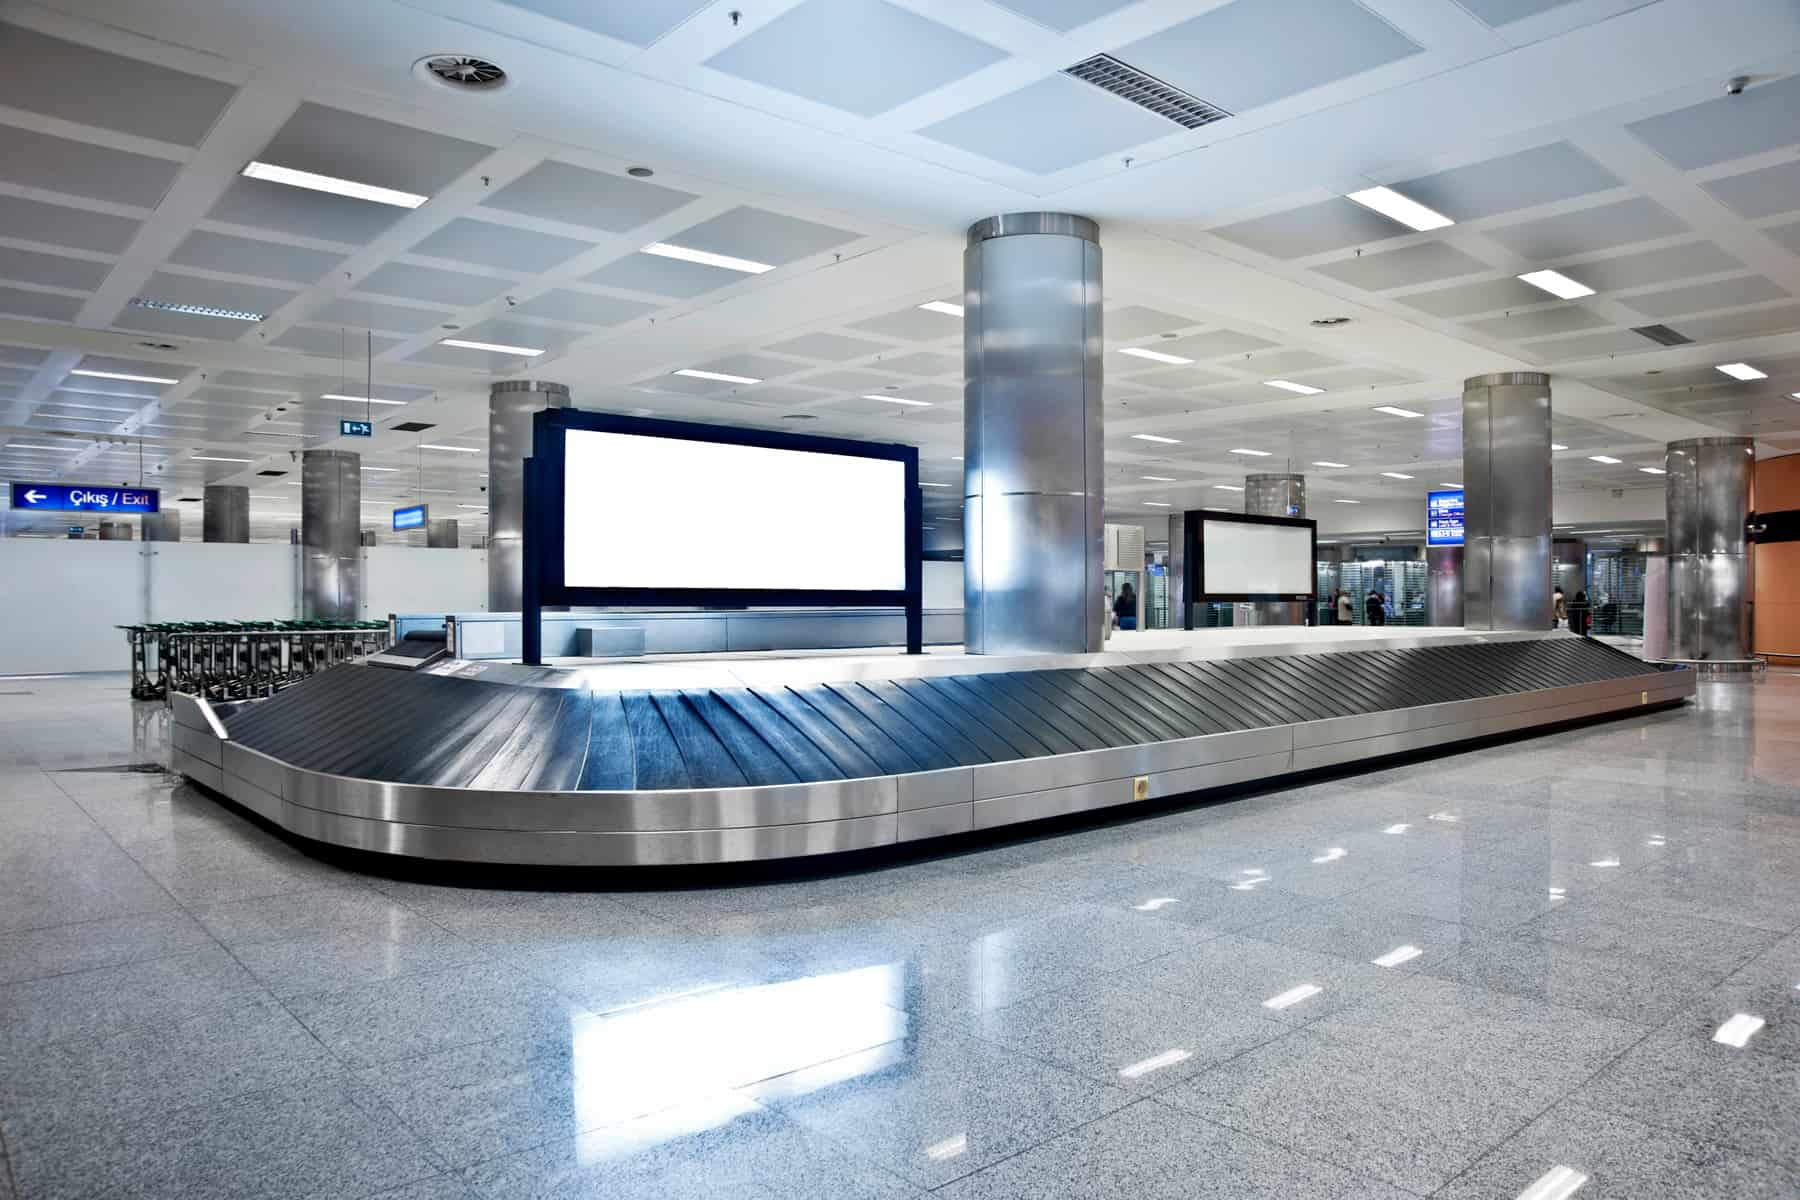 Empty baggage carousel at the airport. What to do if you need to deal with Aeromexico lost luggage